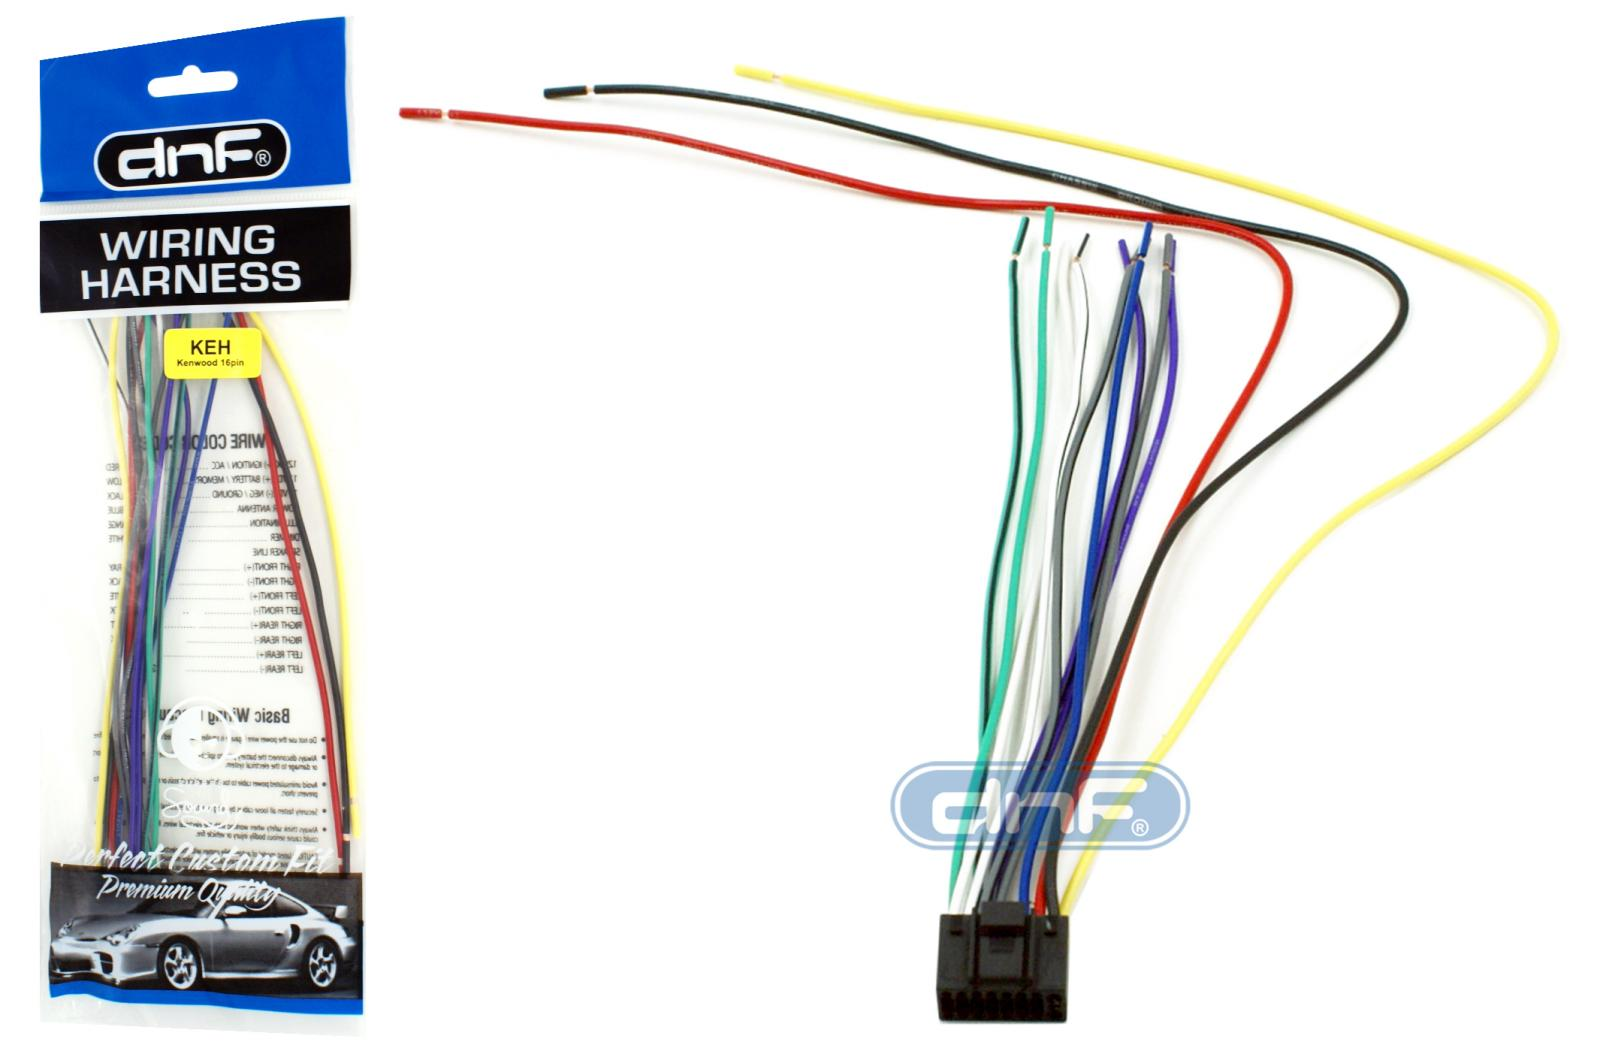 [TBQL_4184]  7CE4 Kenwood Kdc 300 Cd Player Wiring Diagram | Wiring Library | Kenwood Kdc 128 Wiring Harness |  | Wiring Library